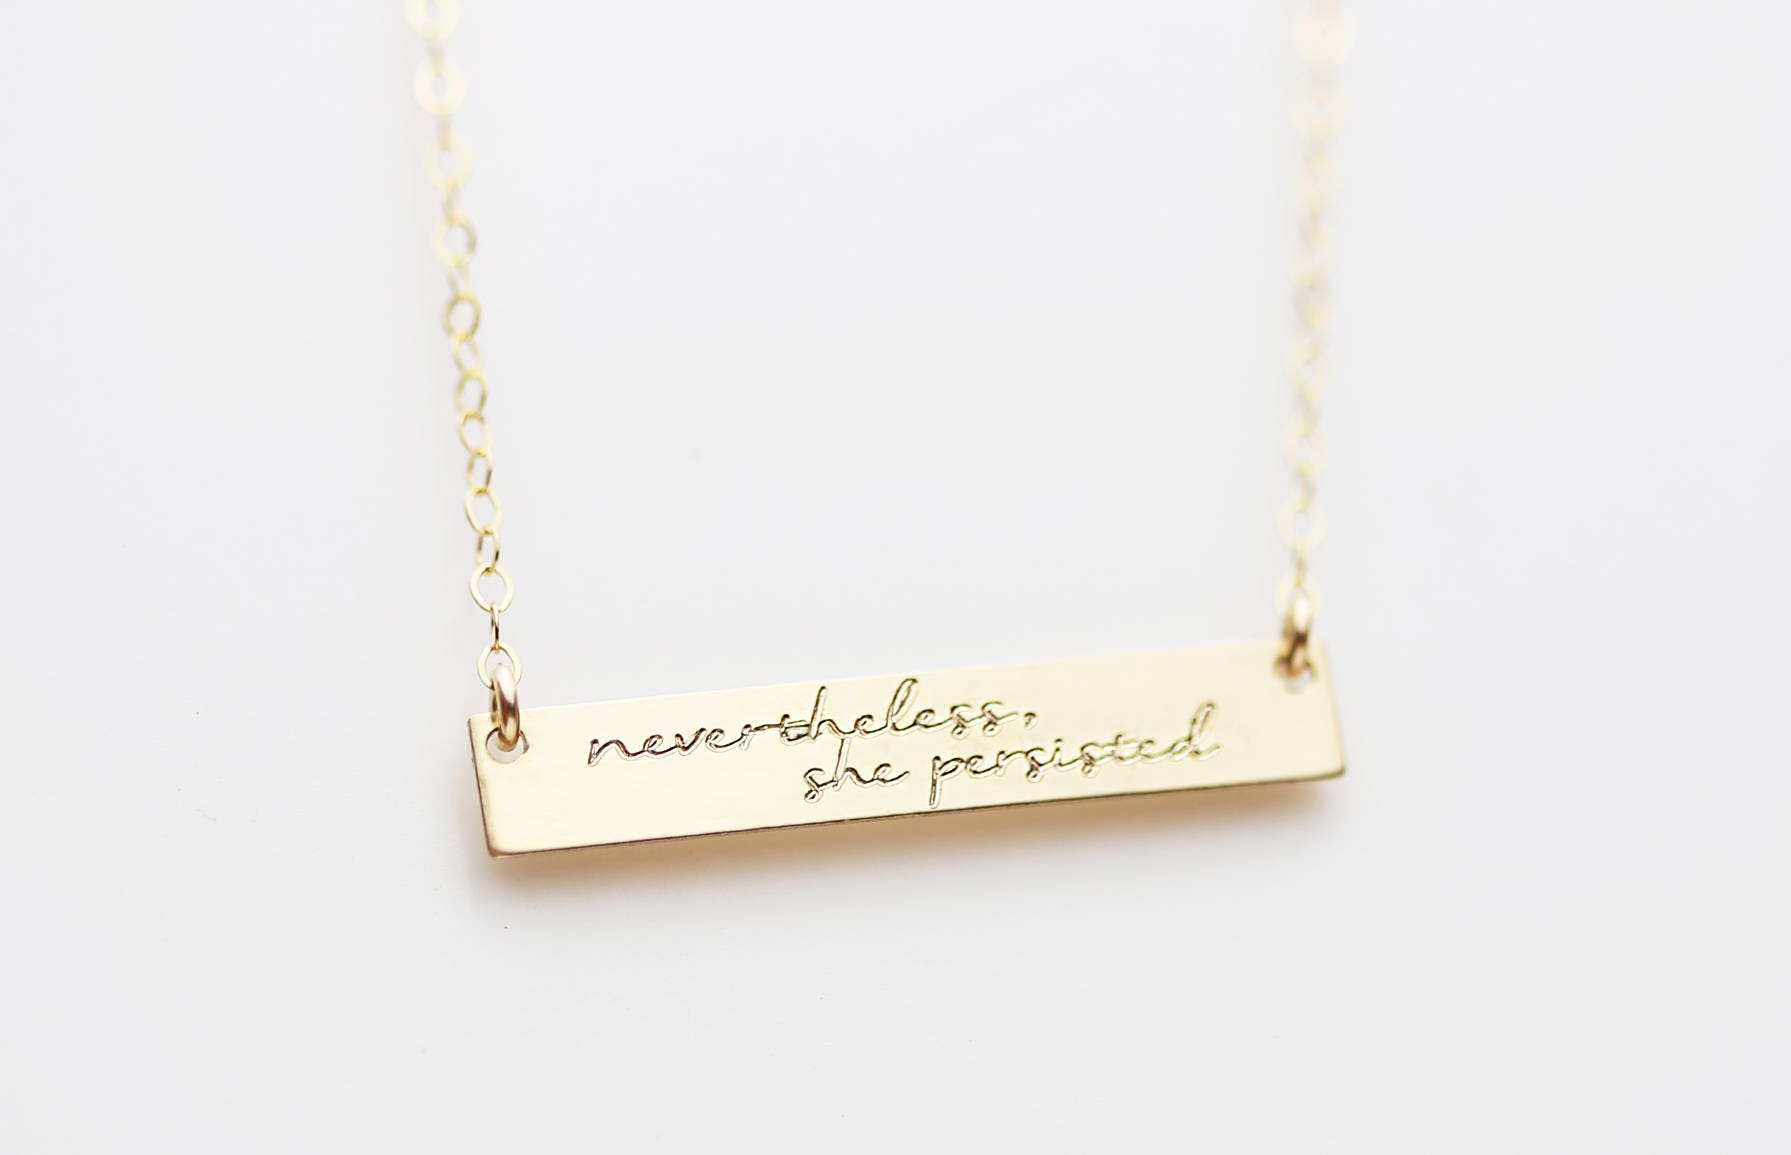 inspirational necklace nevertheless she persisted custom